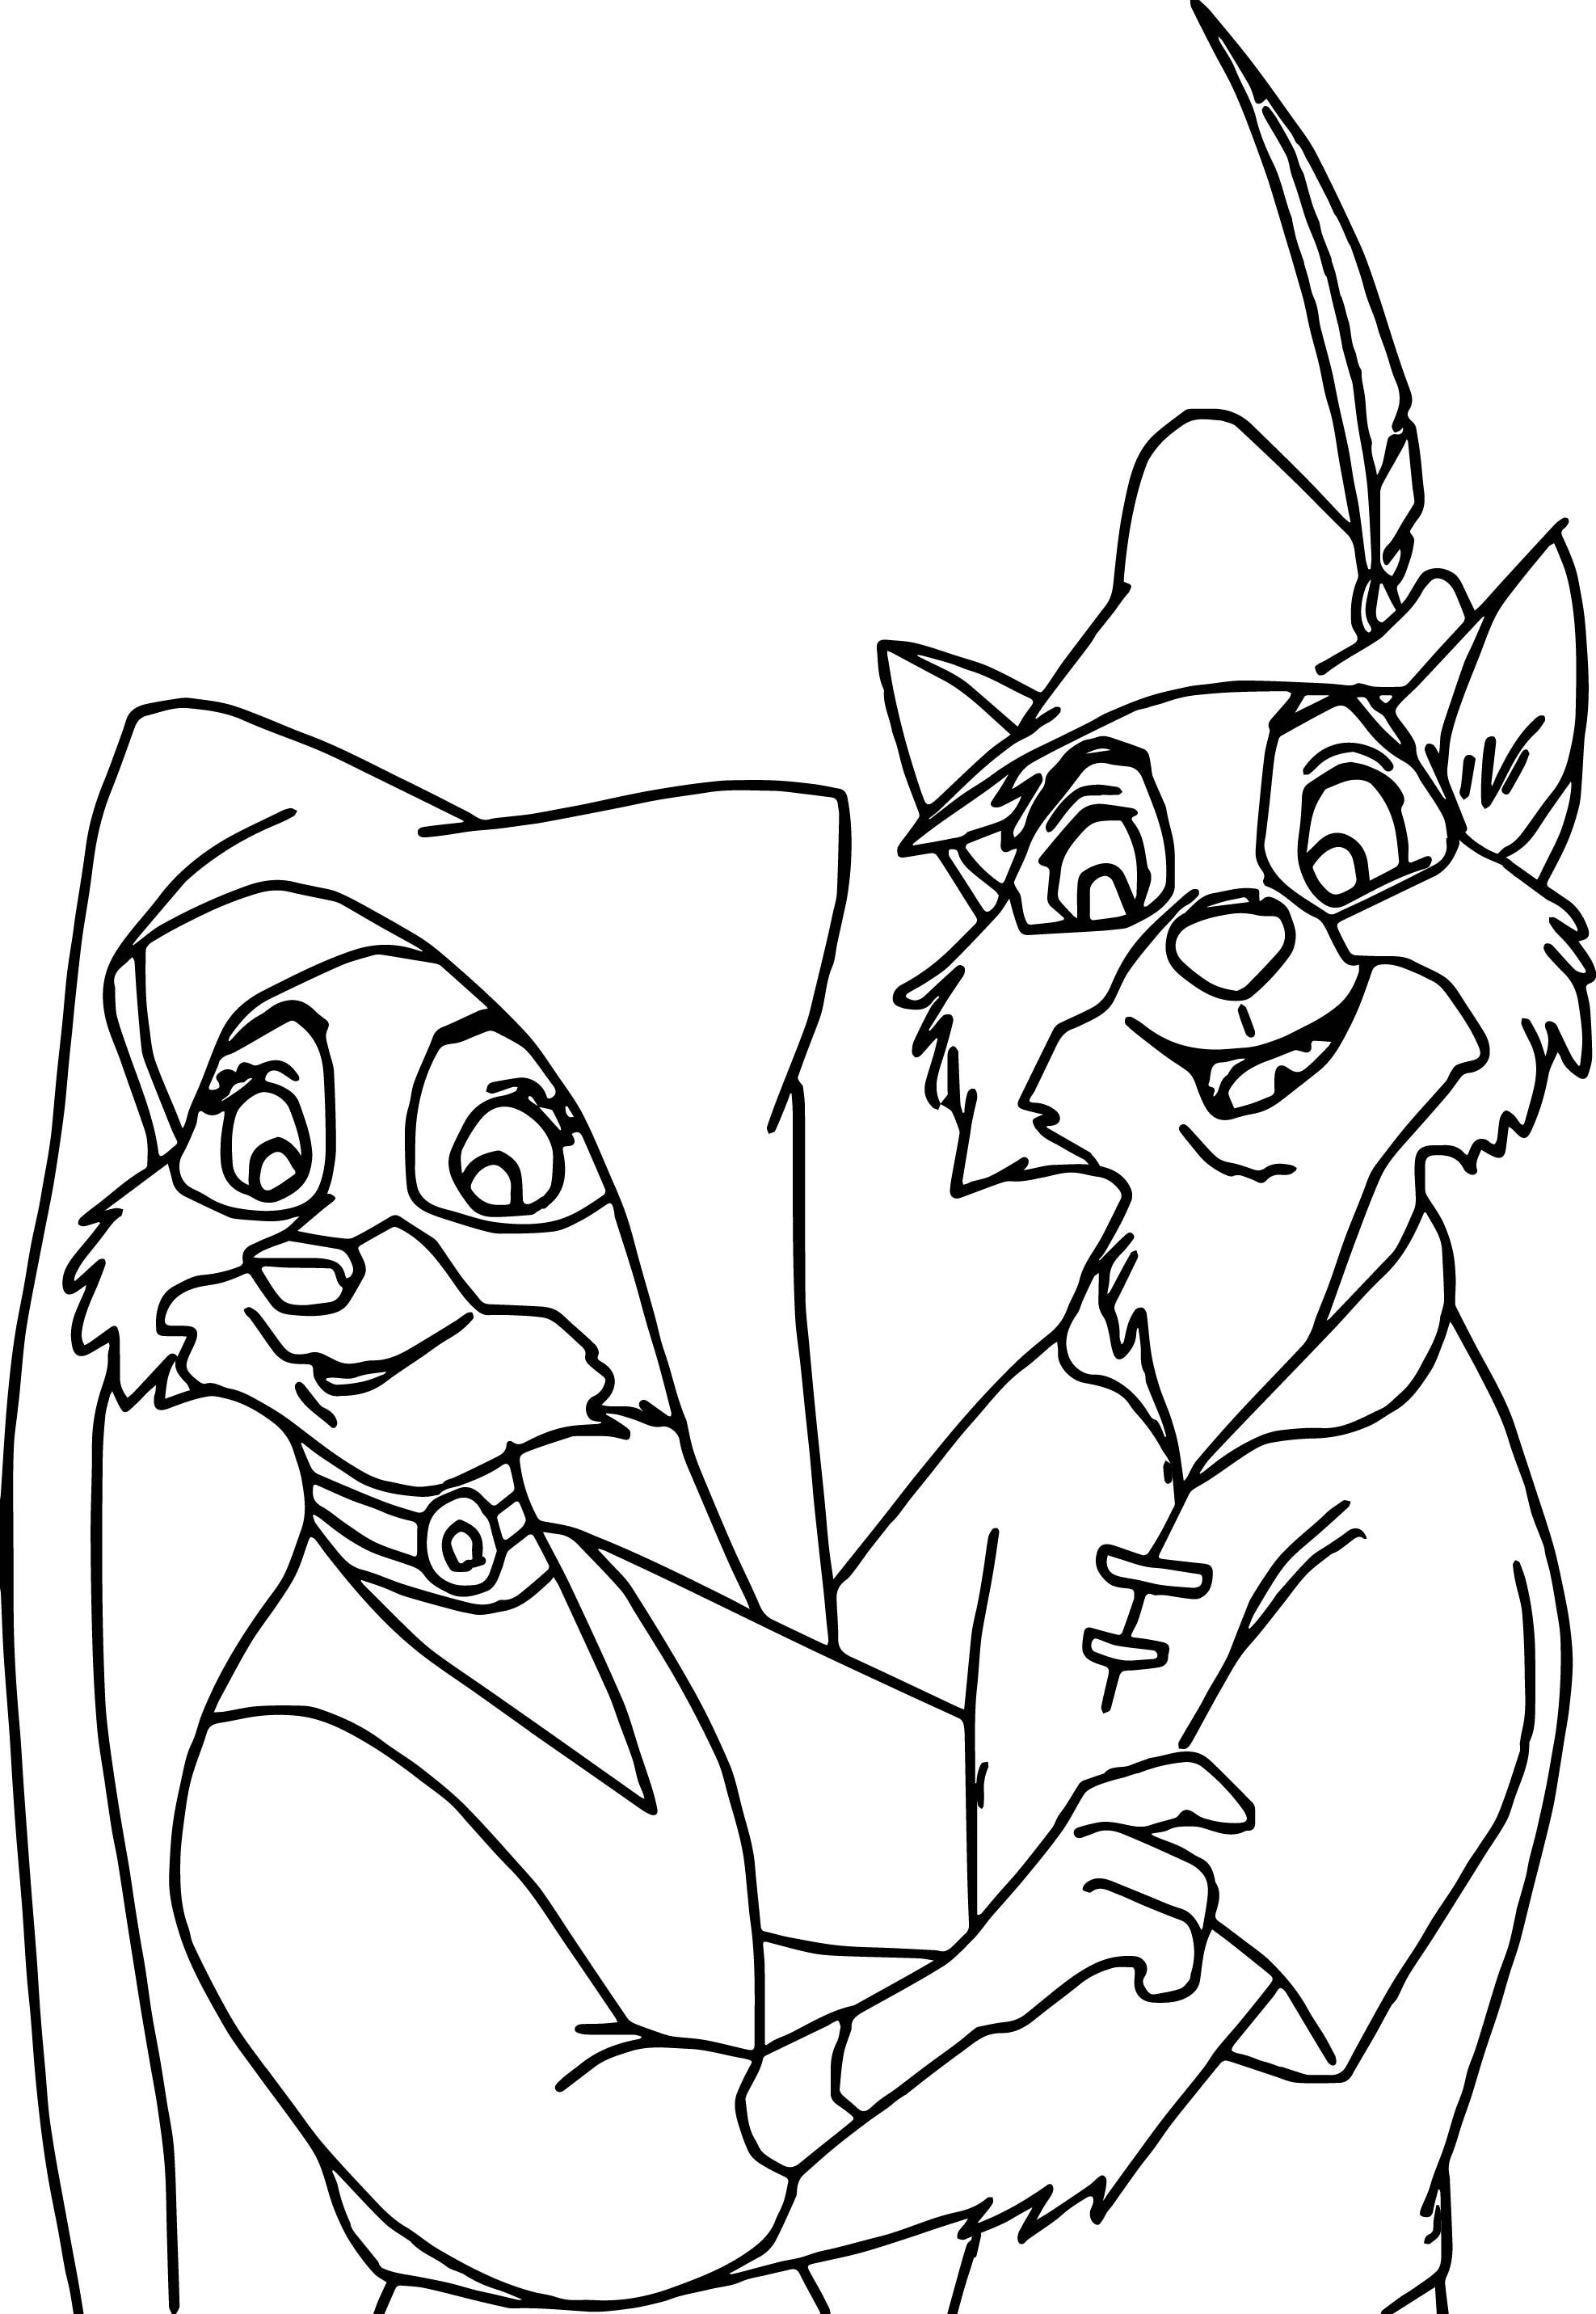 Disney Robin Hood Coloring Pages | wecoloringpage | Pinterest